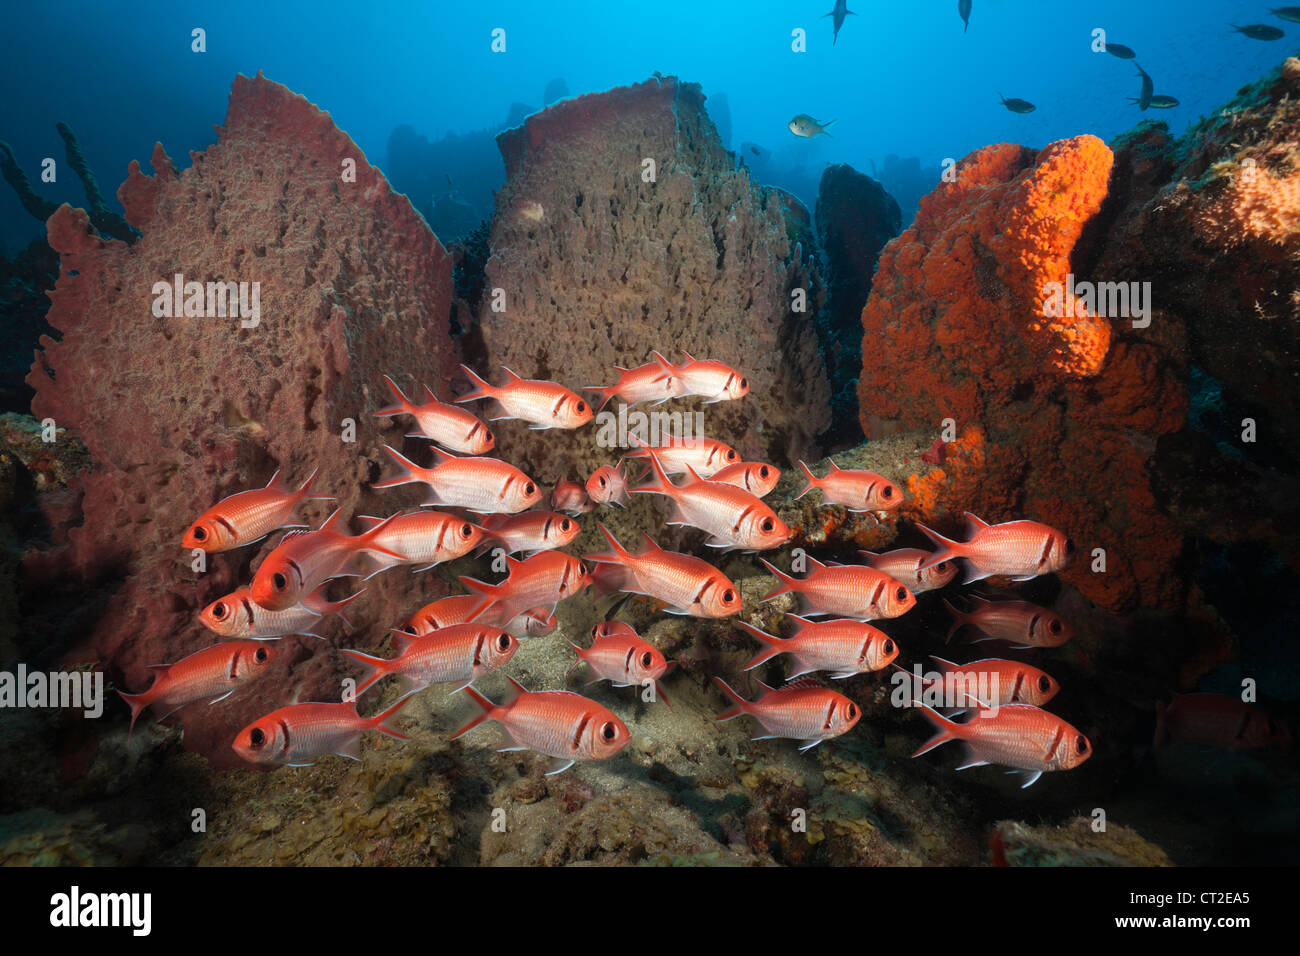 Soldierfish on Coral Reef, Myripristis jacobus, Caribbean Sea, Dominica - Stock Image